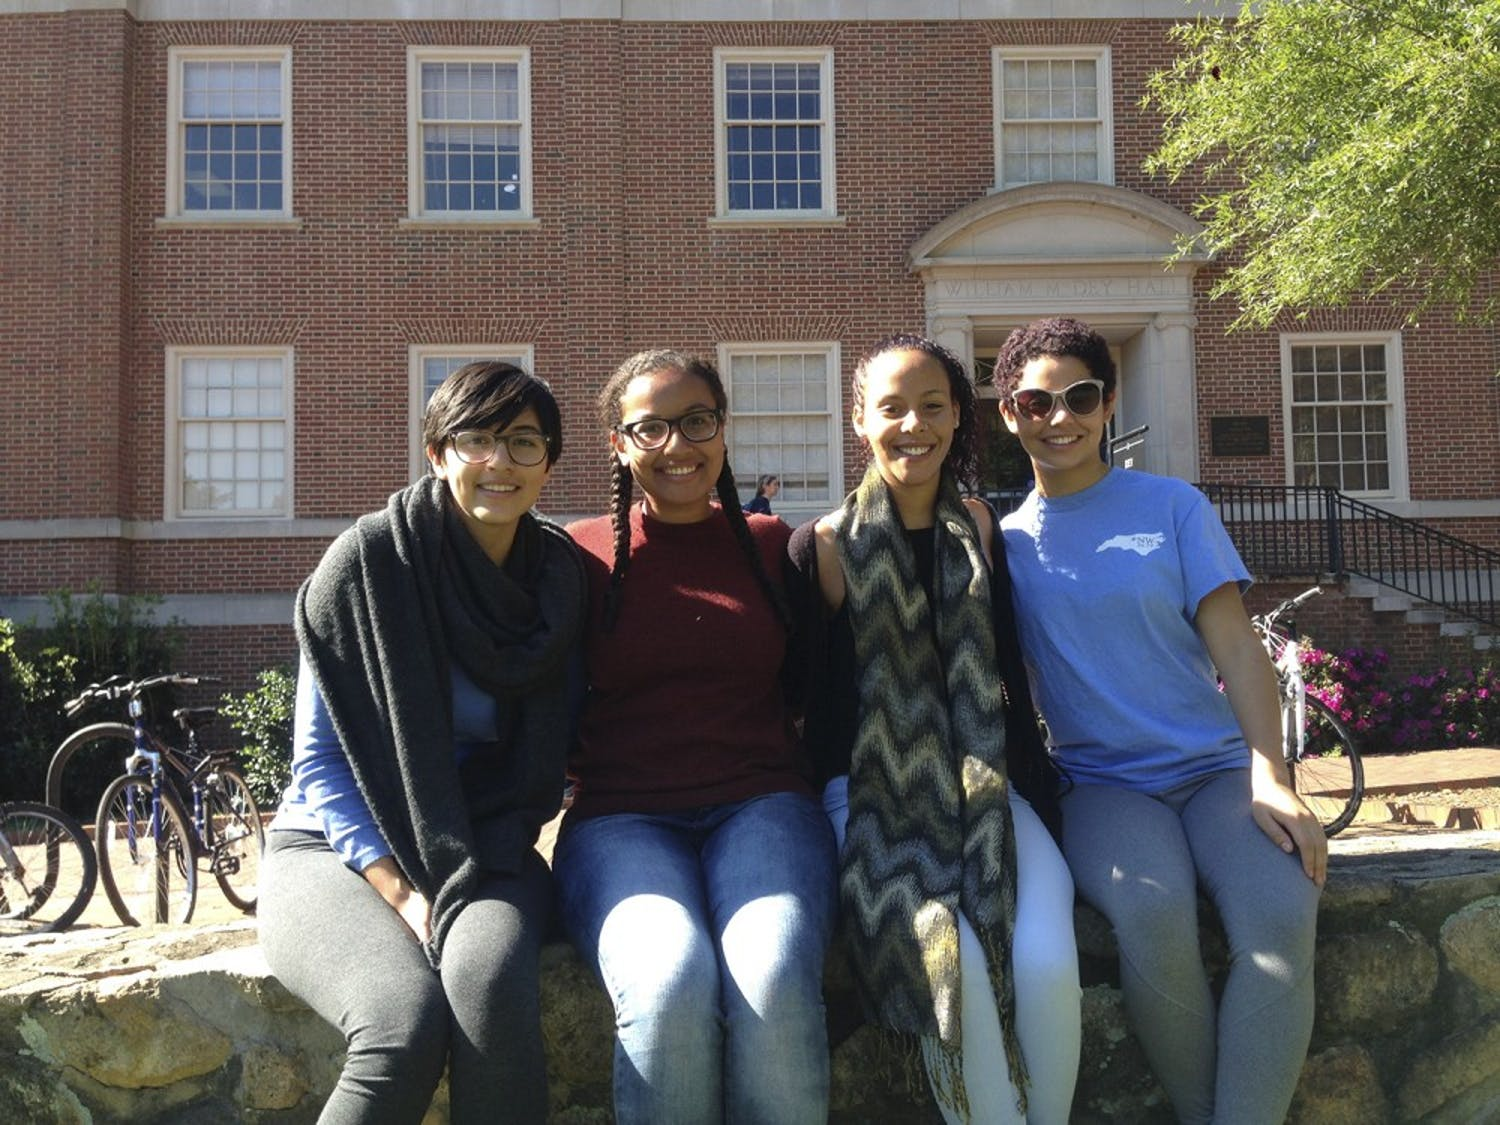 (From left): Amy Townsend, Leona Amosah, Michelle Brown, Jasmyn Thomas are members for the SWIRL club